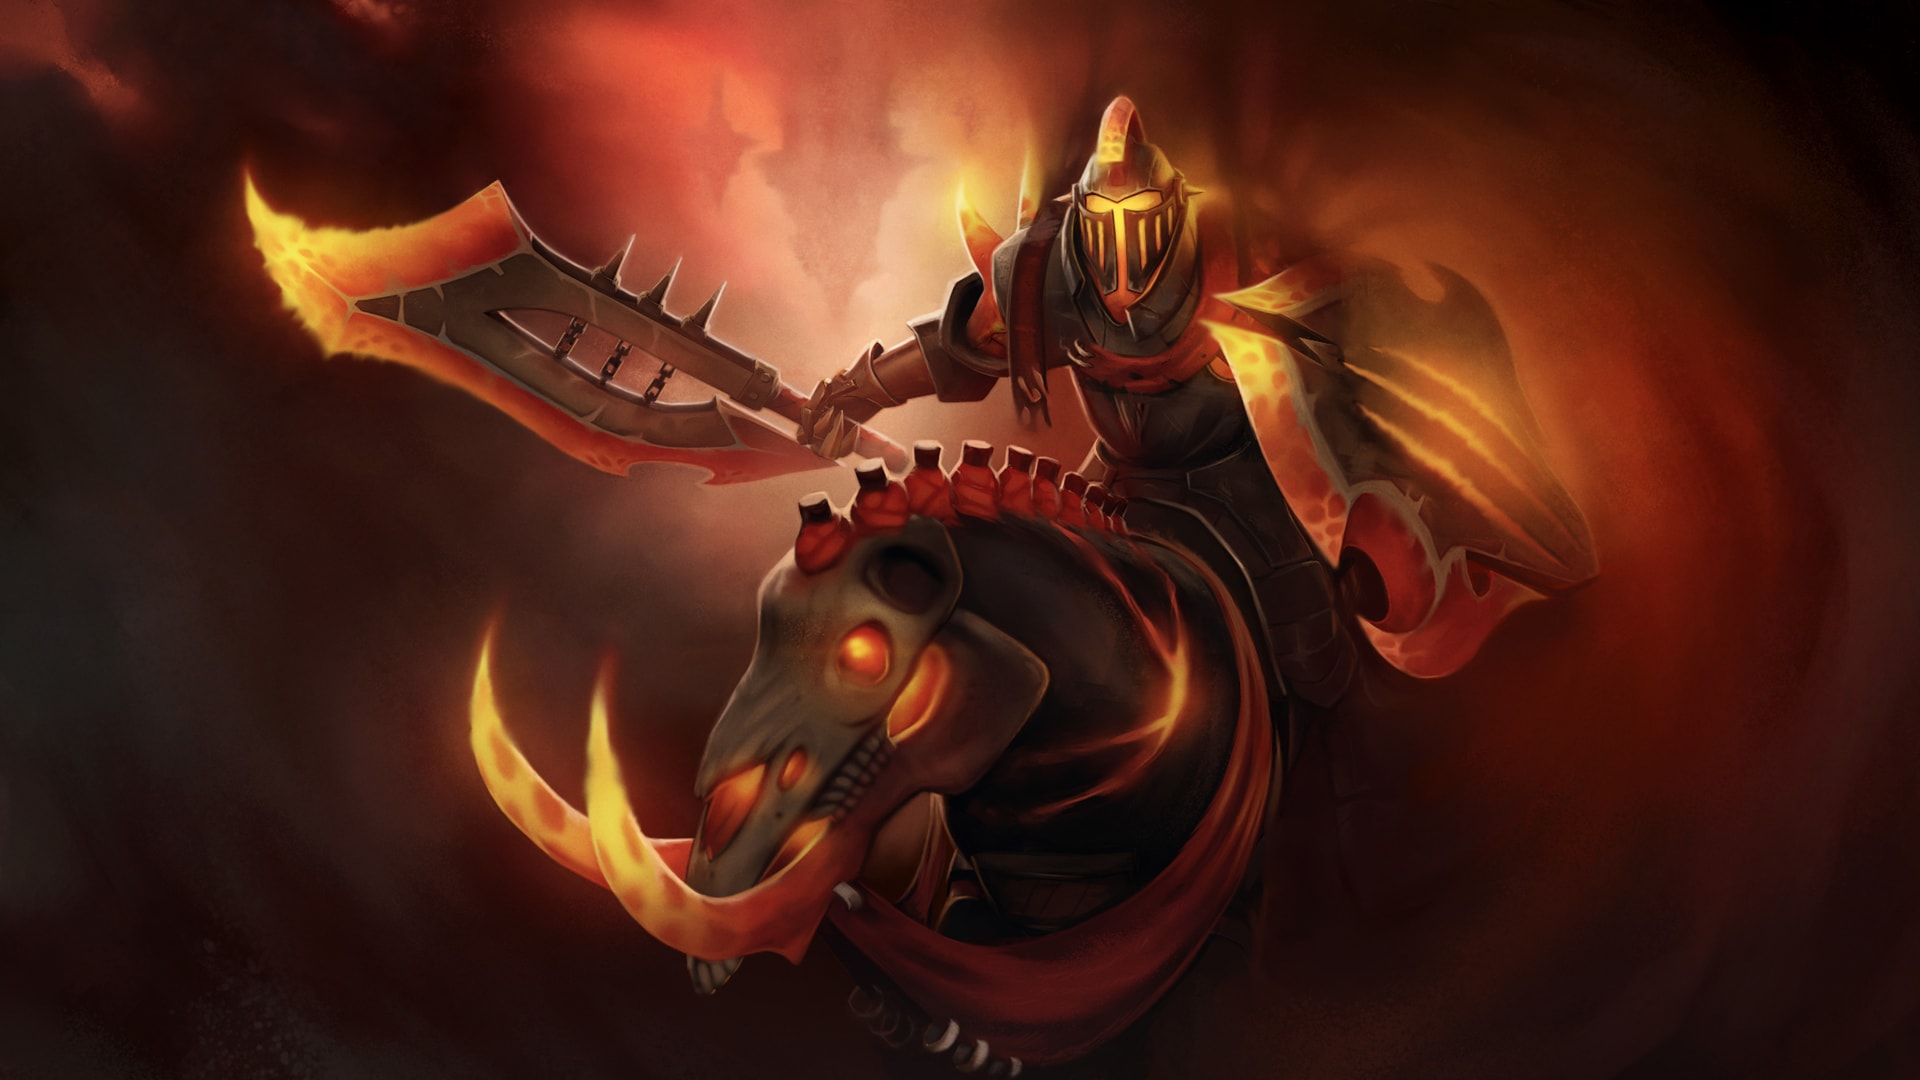 Dota2 : Chaos Knight Backgrounds